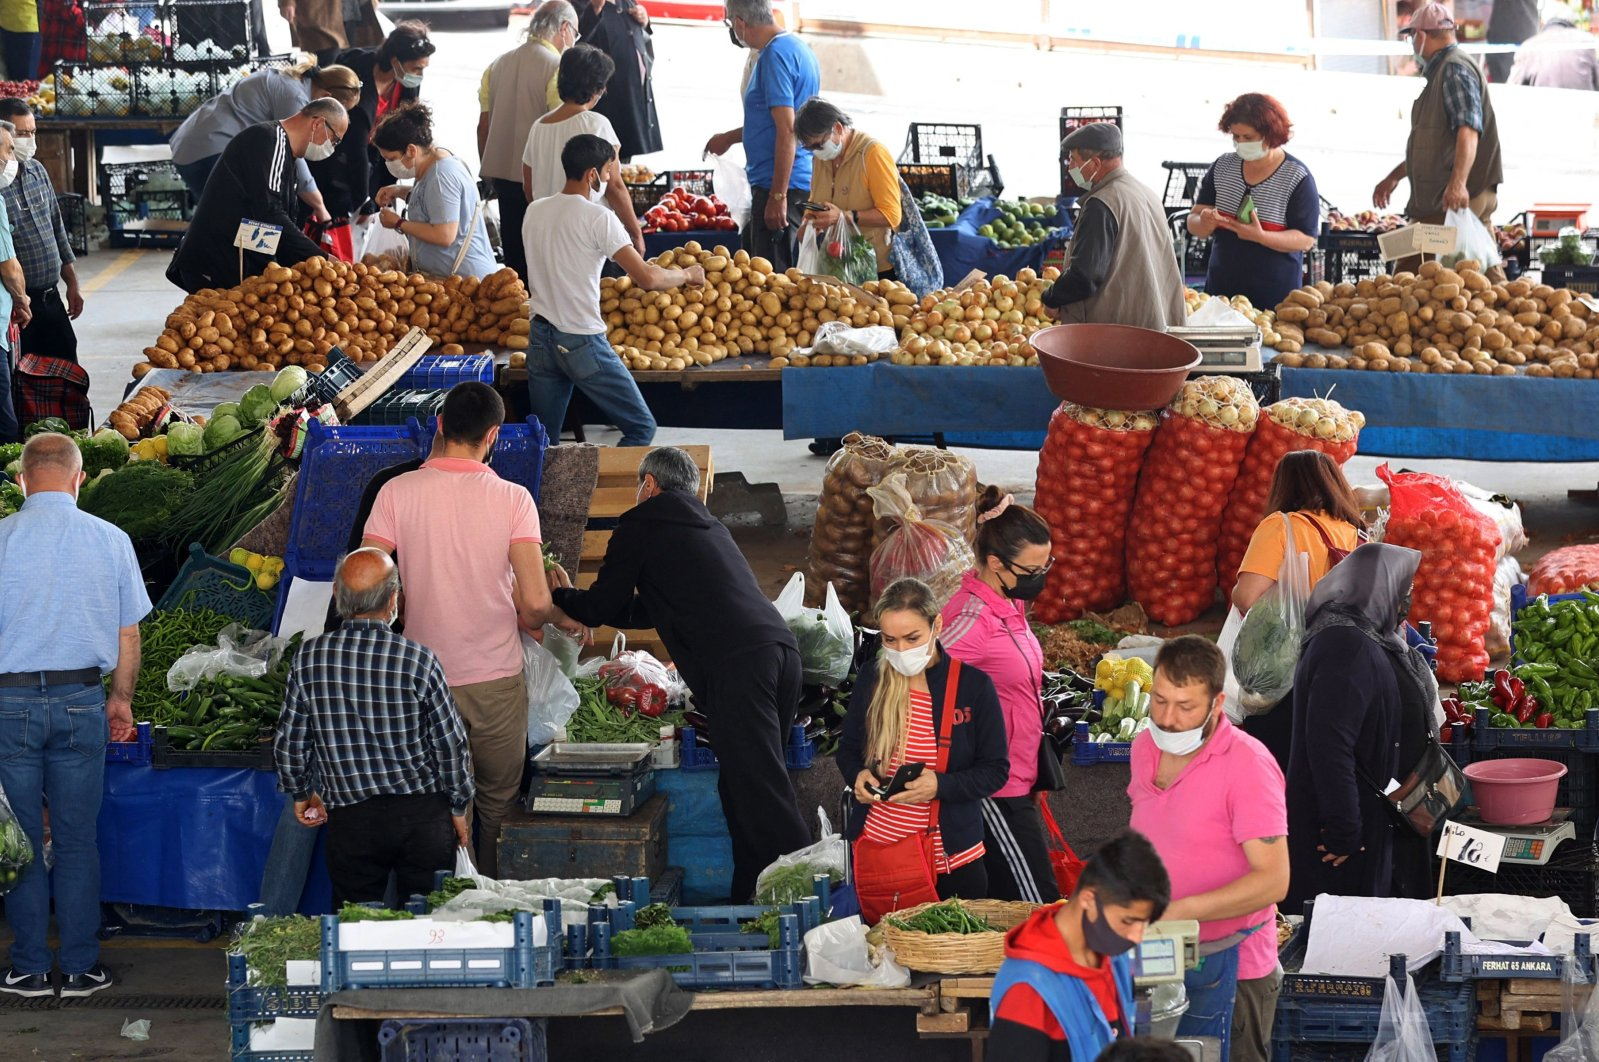 People shop at an open-air market after they were reopened across Turkey for a day as the country undergoes its strictest lockdown to fight against COVID-19, in Ankara, Turkey, May 8, 2021. (AFP Photo)